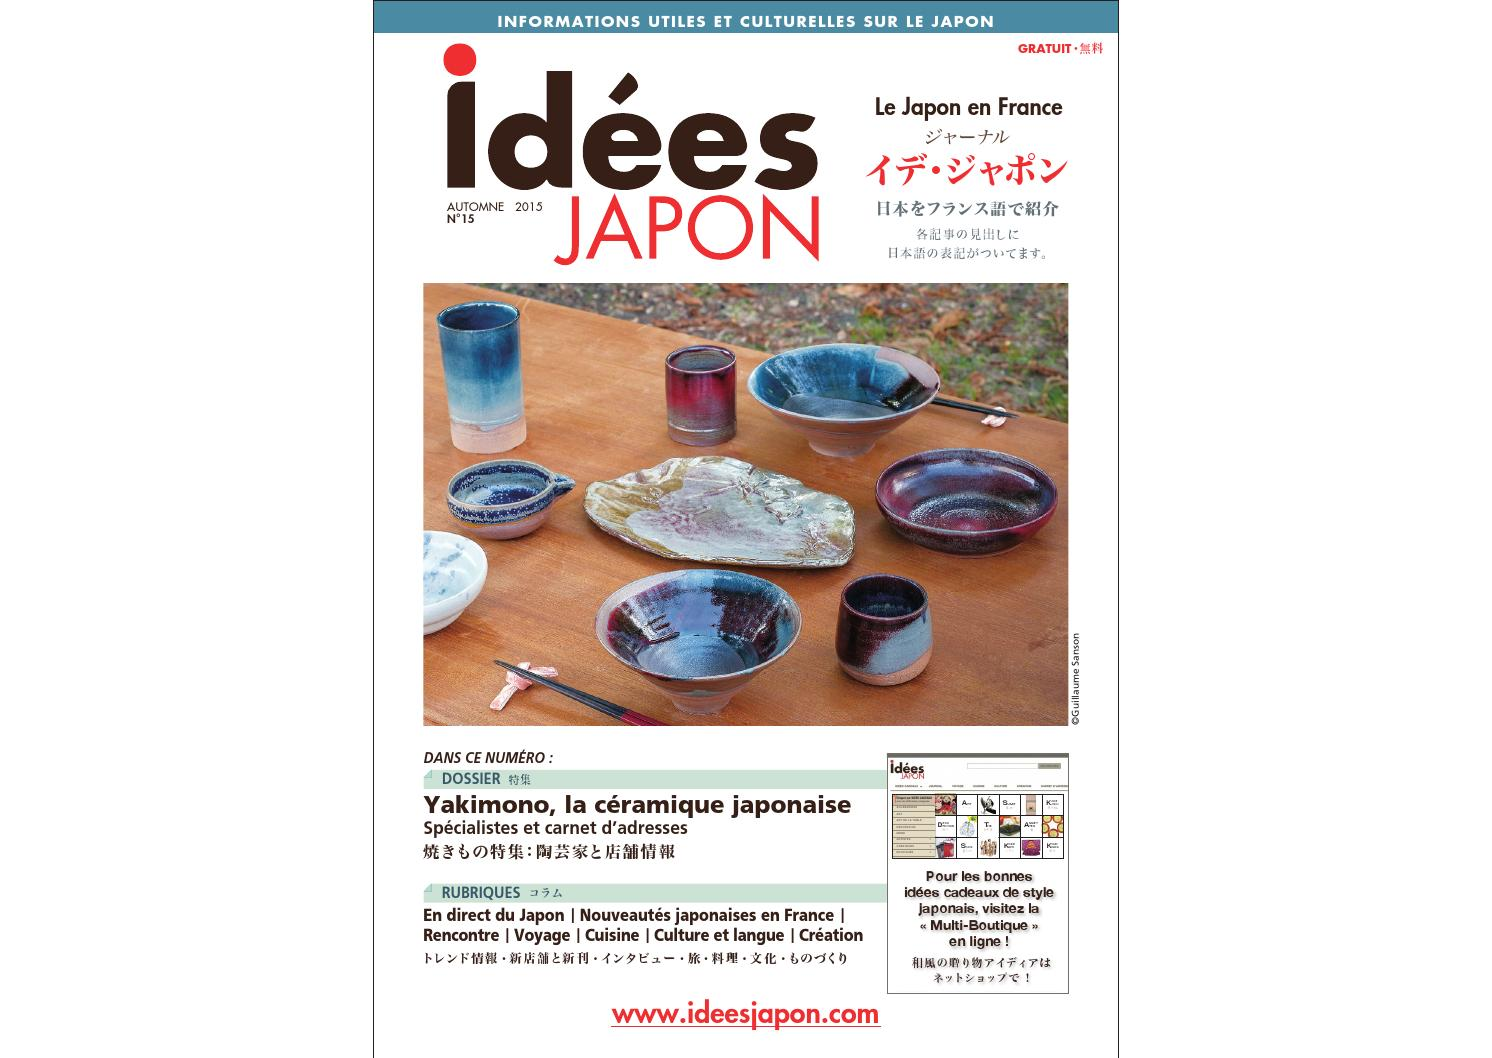 Chambre Adulte Style Asiatique idees japon automne 2015idees japon - issuu